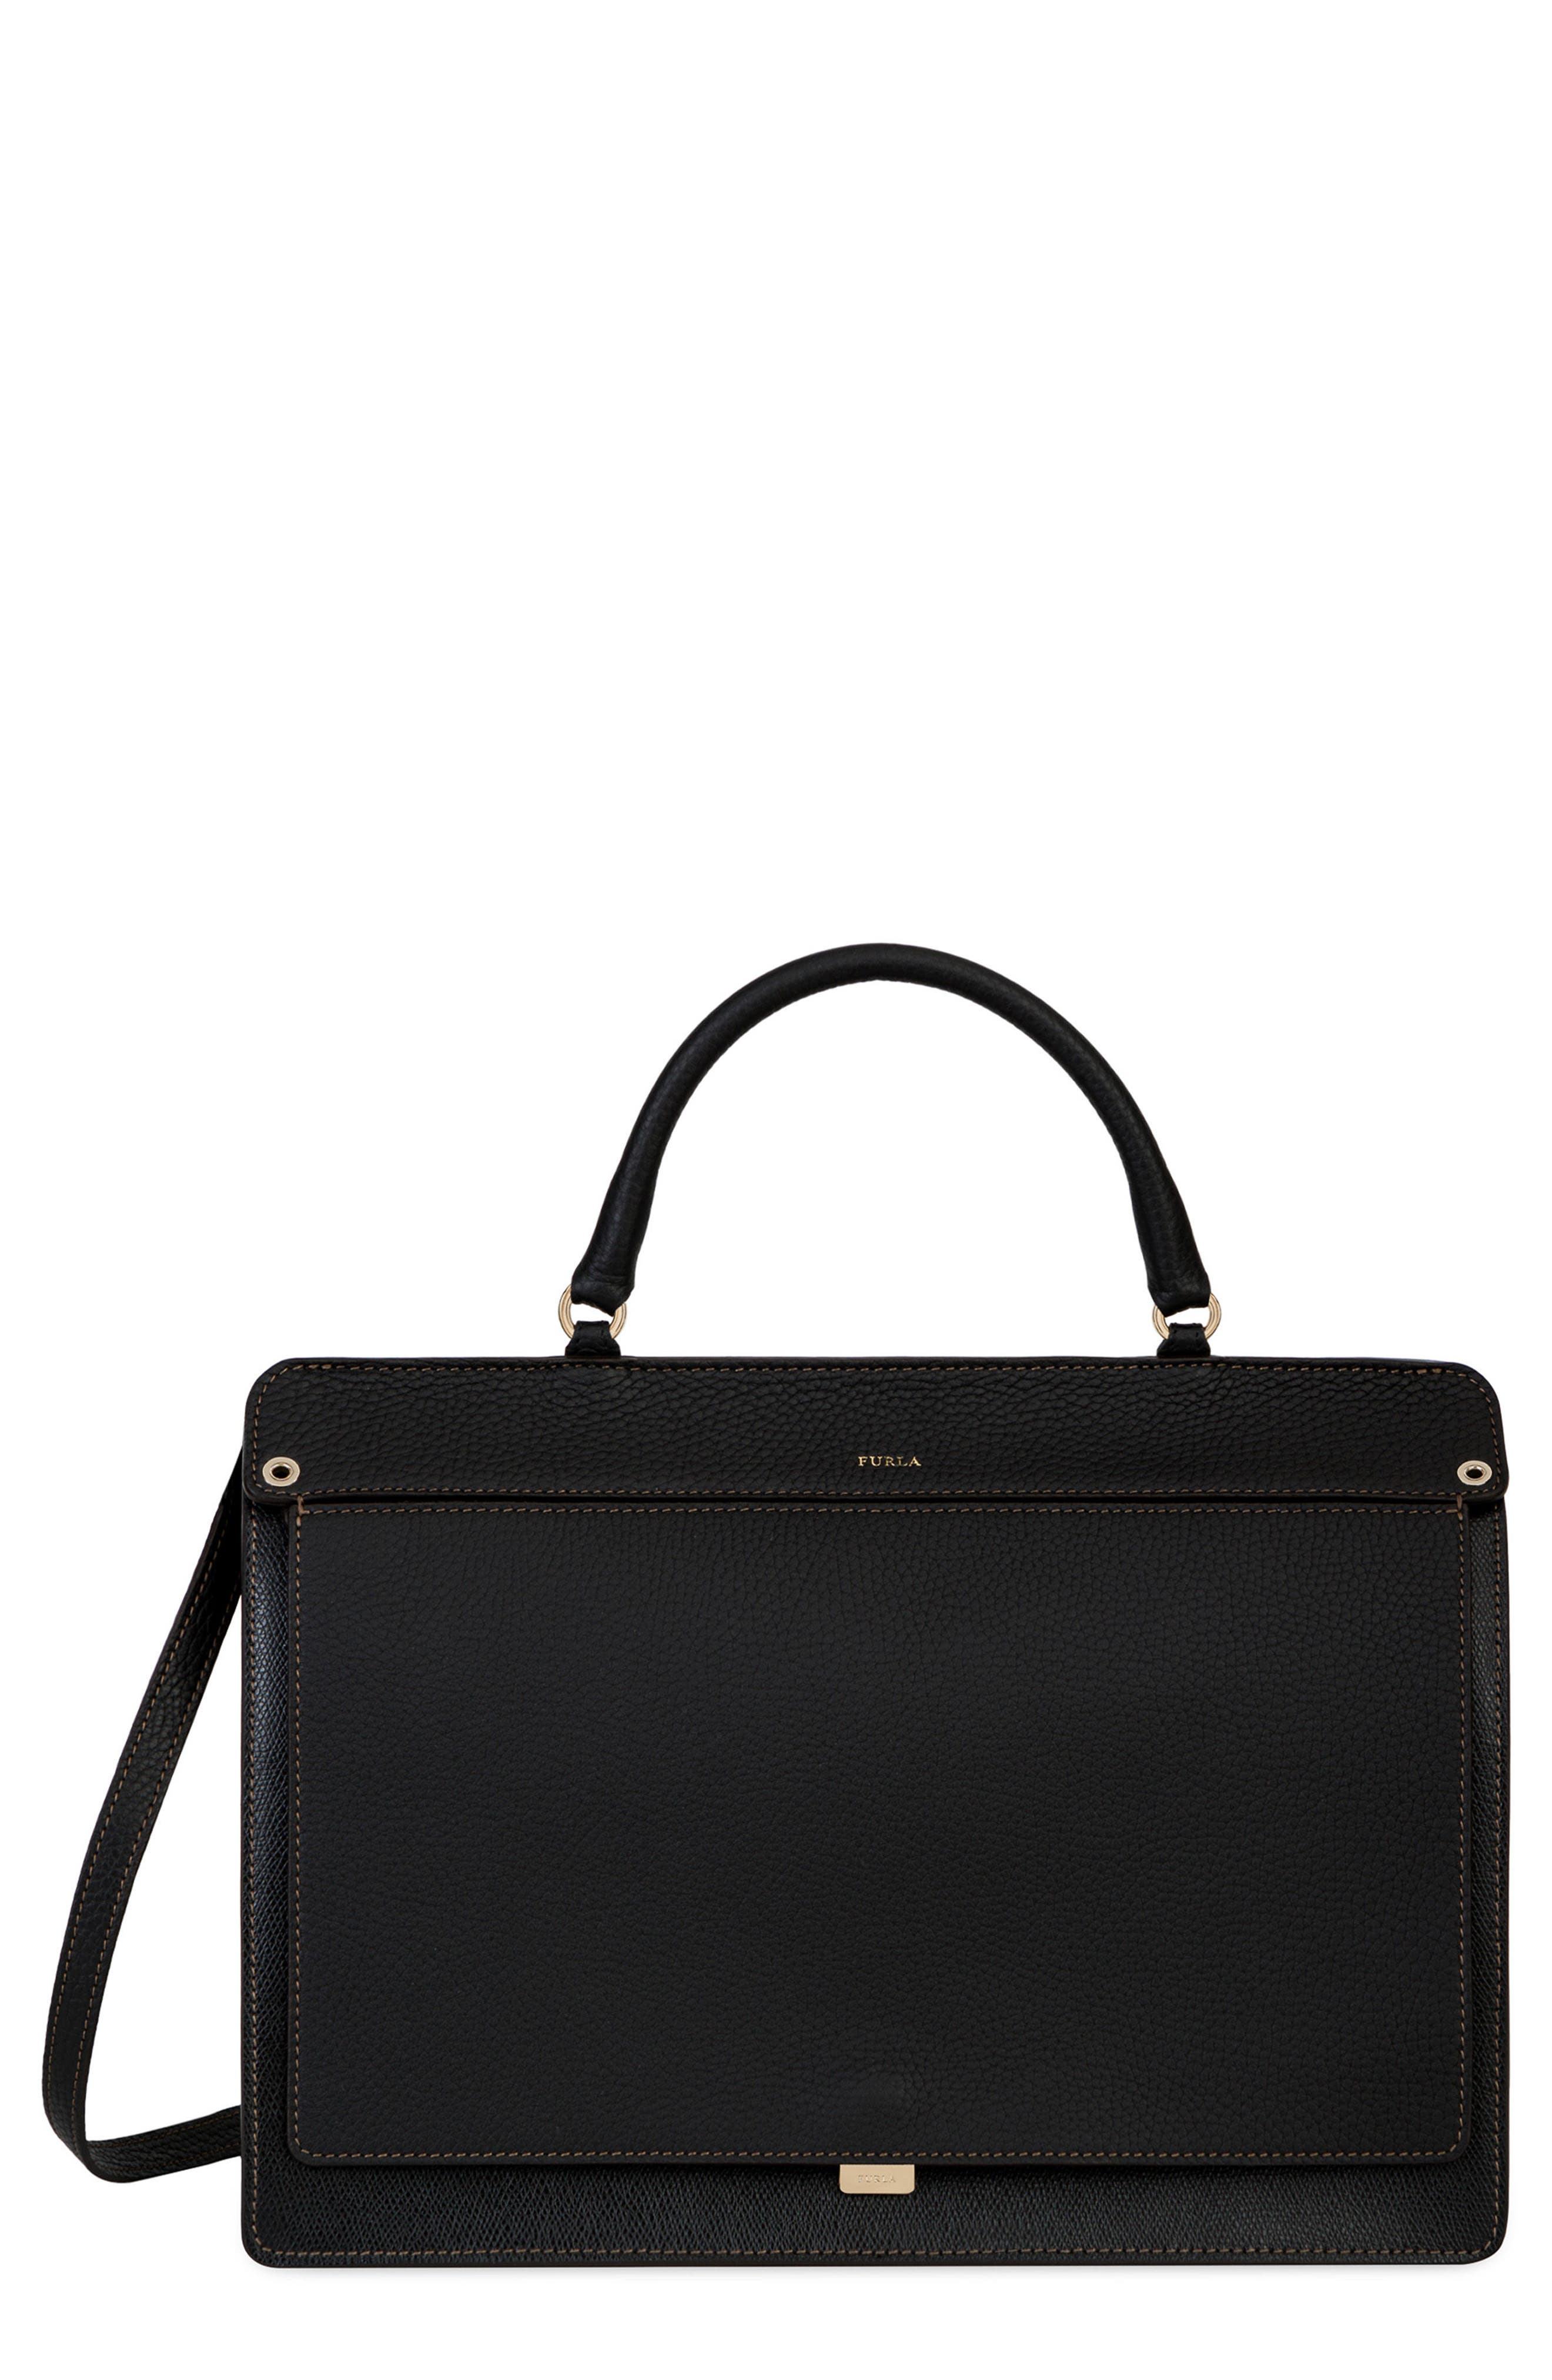 Alternate Image 1 Selected - Furla Small Like Leather Top Handle Convertible Satchel